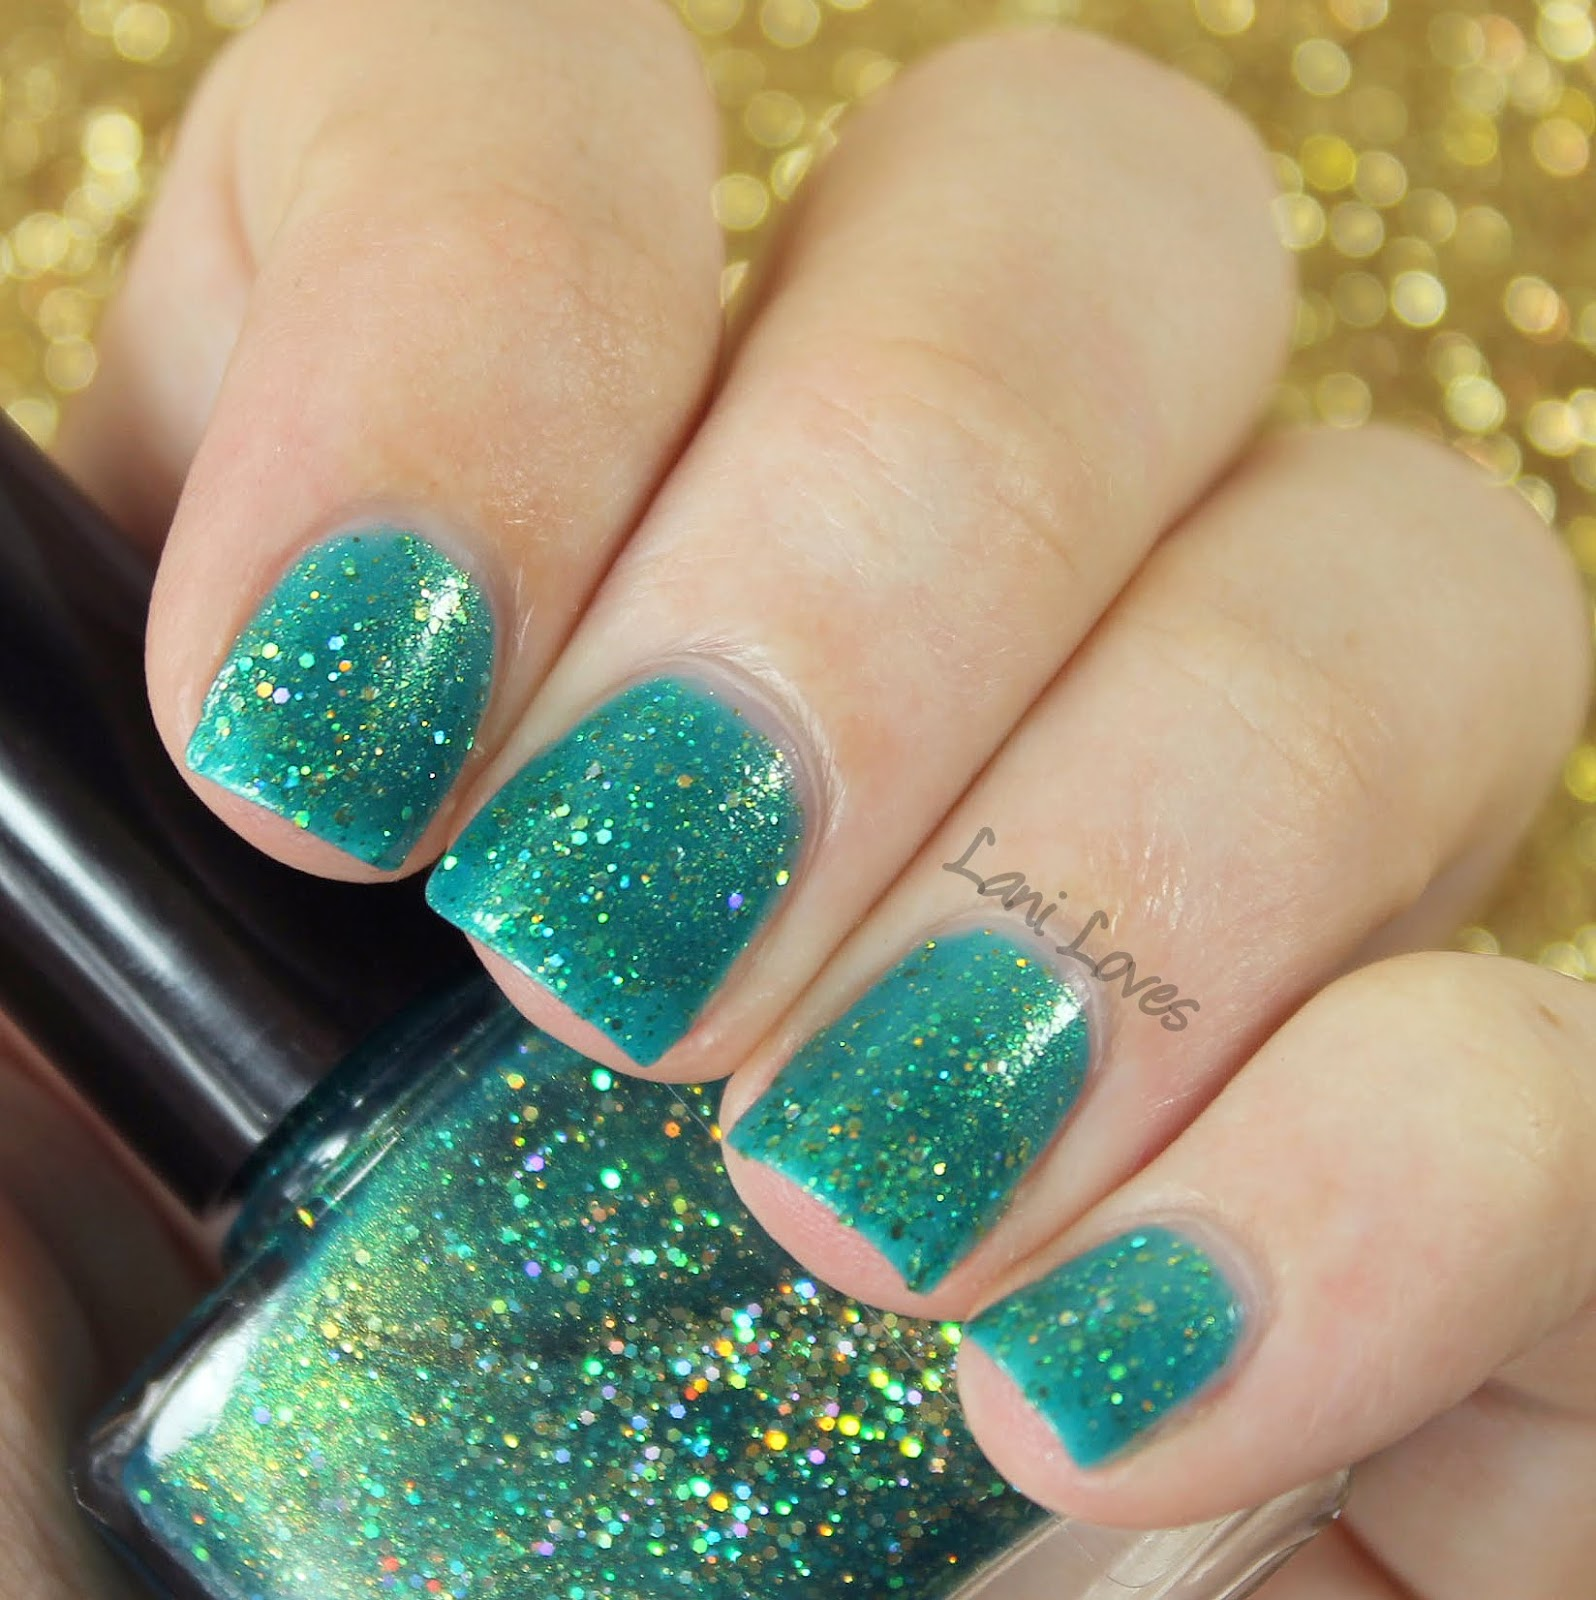 Femme Fatale Cosmetics Stand in the Clouds nail polish swatches & review